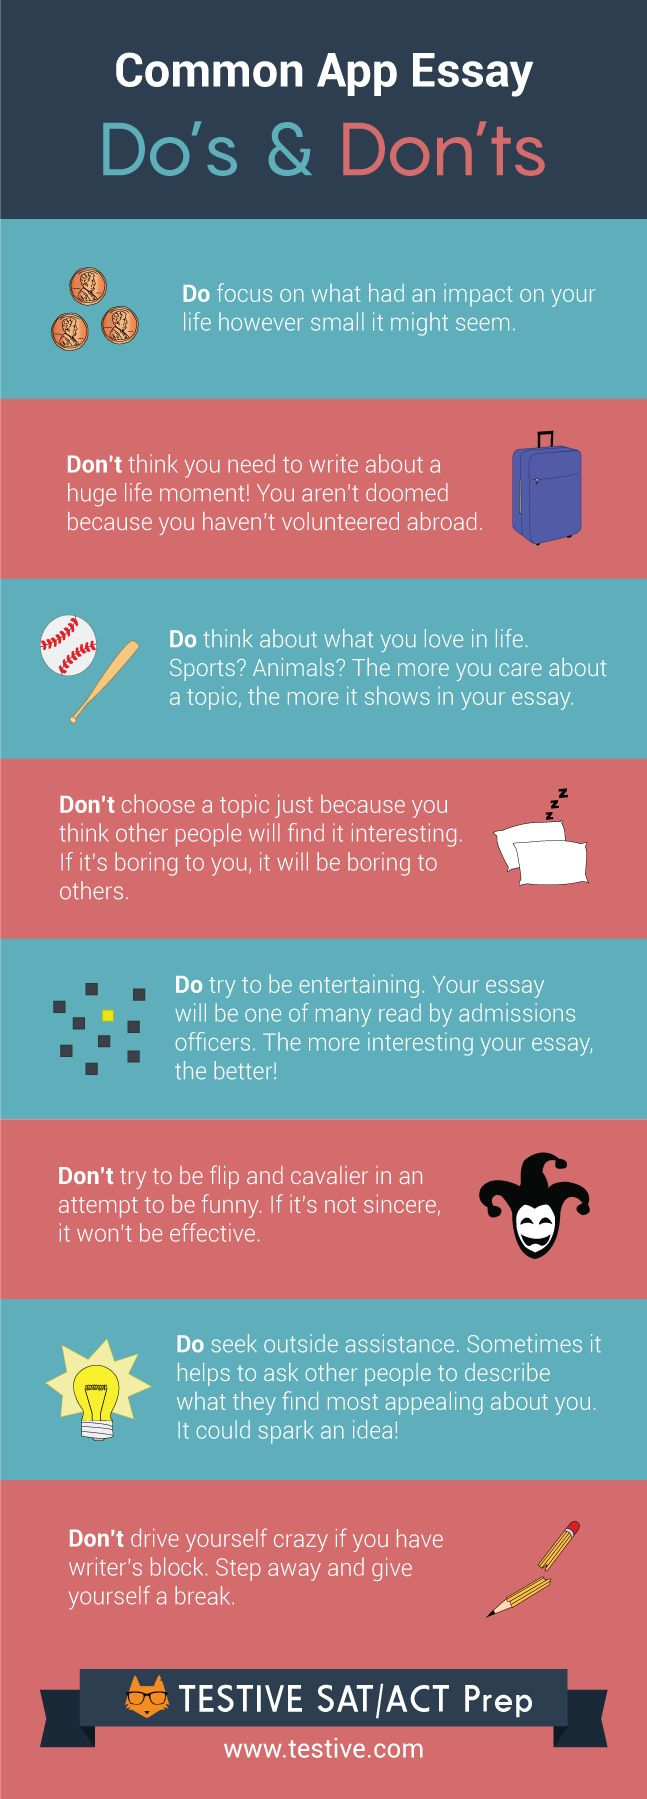 best college essay ideas college essay tips  best words to describe yourself for college essay college search tool the best school for you use this tool to search by categories such as major and